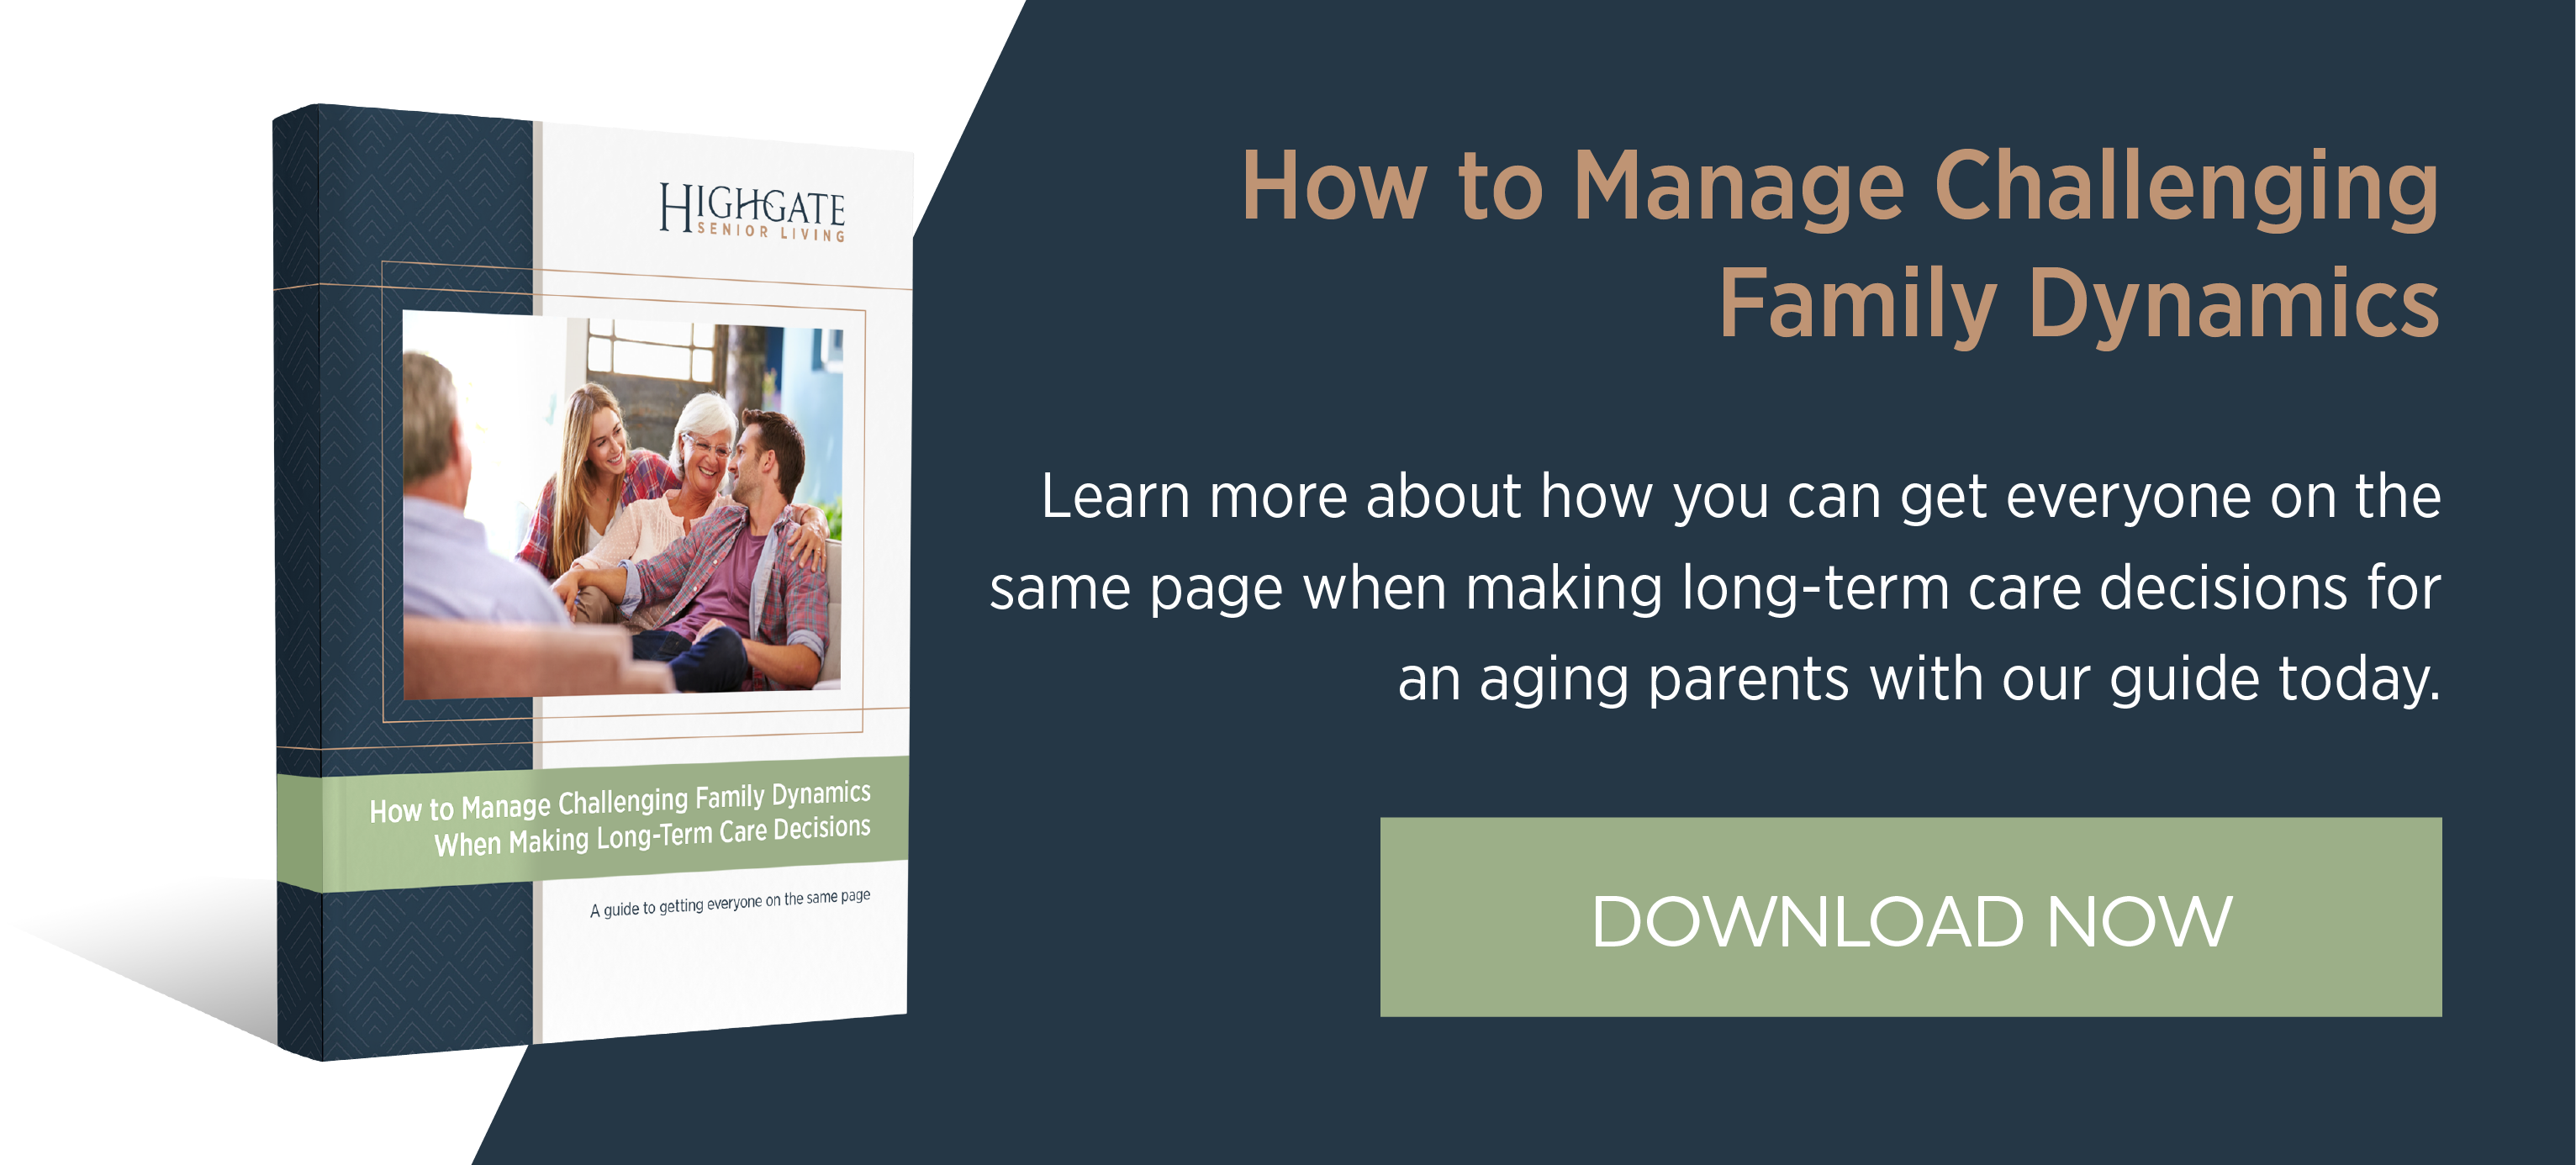 How to Manage Challenging Family Dynamics When Making Long-Term Care Decisions